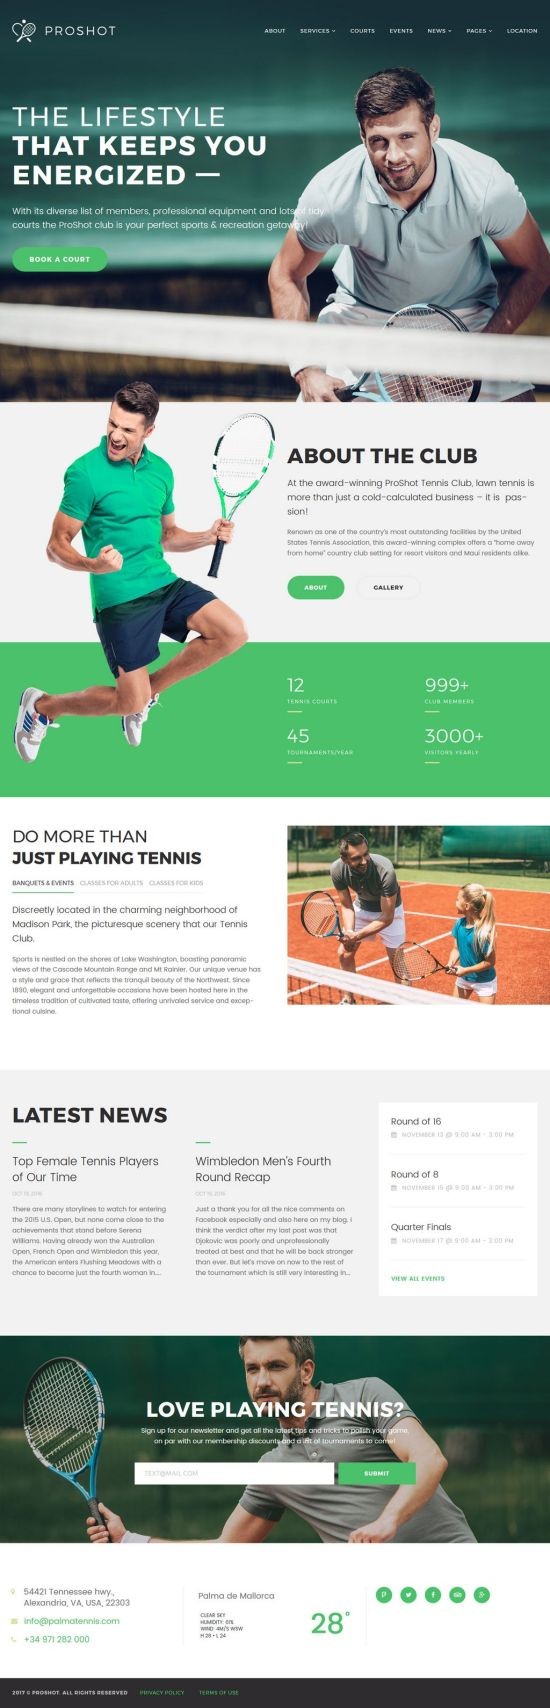 proshot wordpress theme sports theme 01 - ProShot WordPress Theme